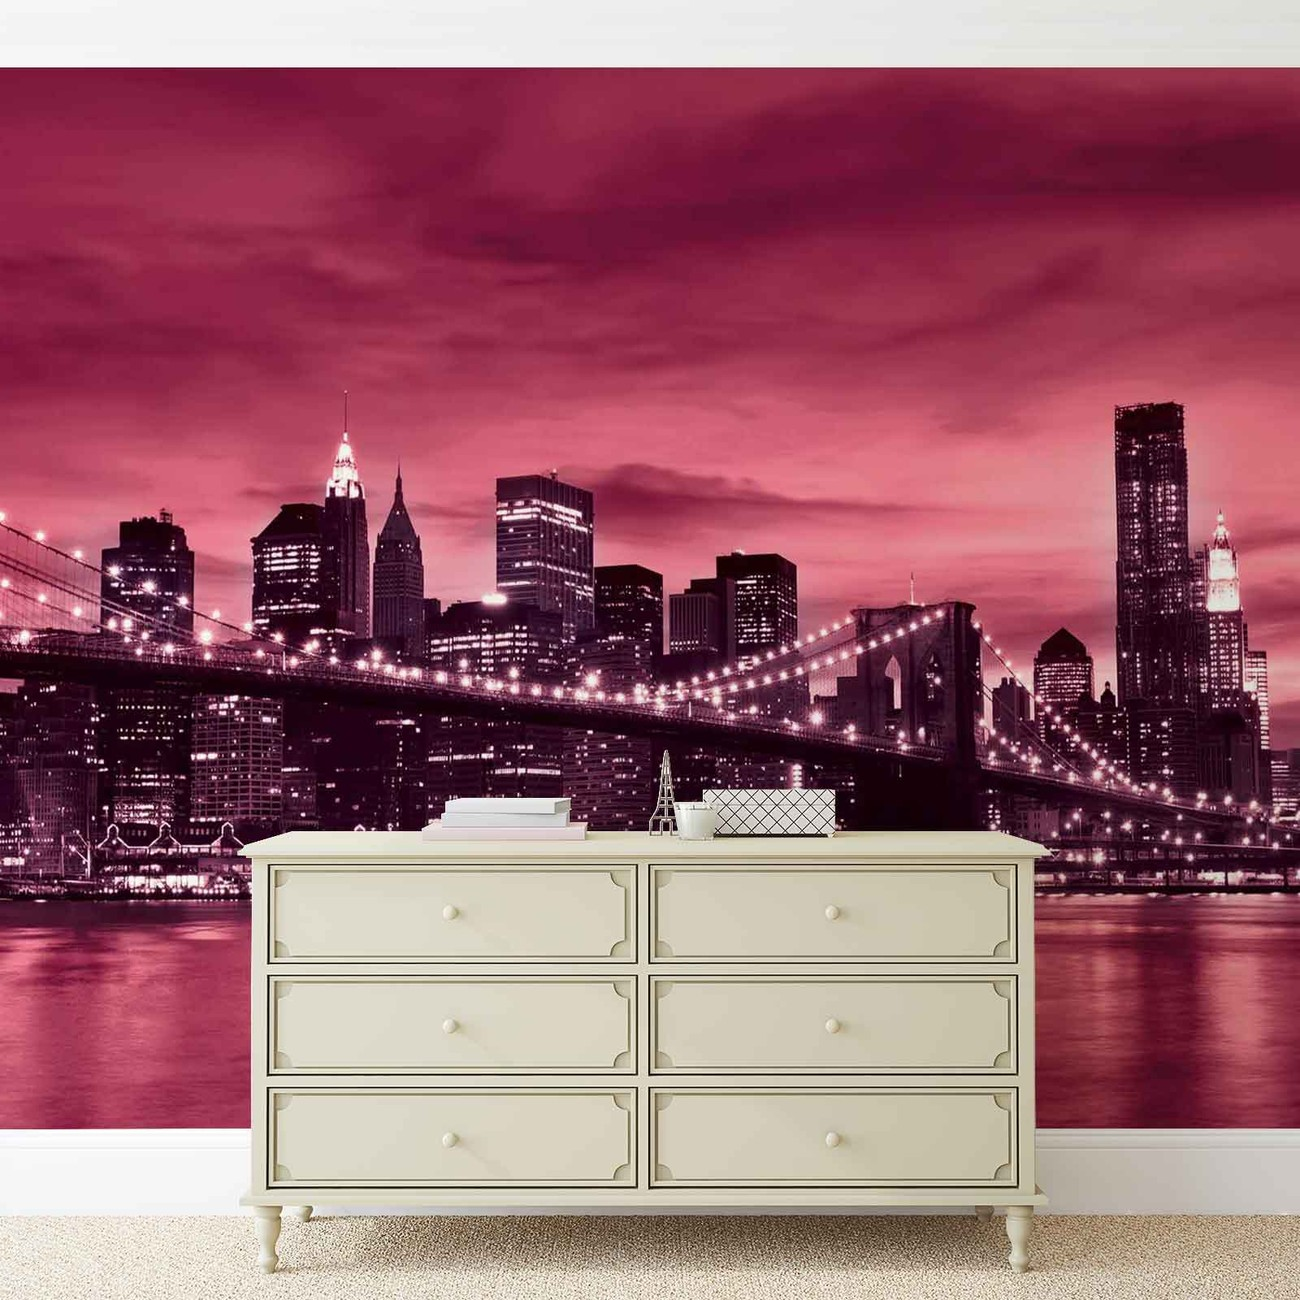 City brooklyn bridge new york city wall paper mural buy for City wall mural